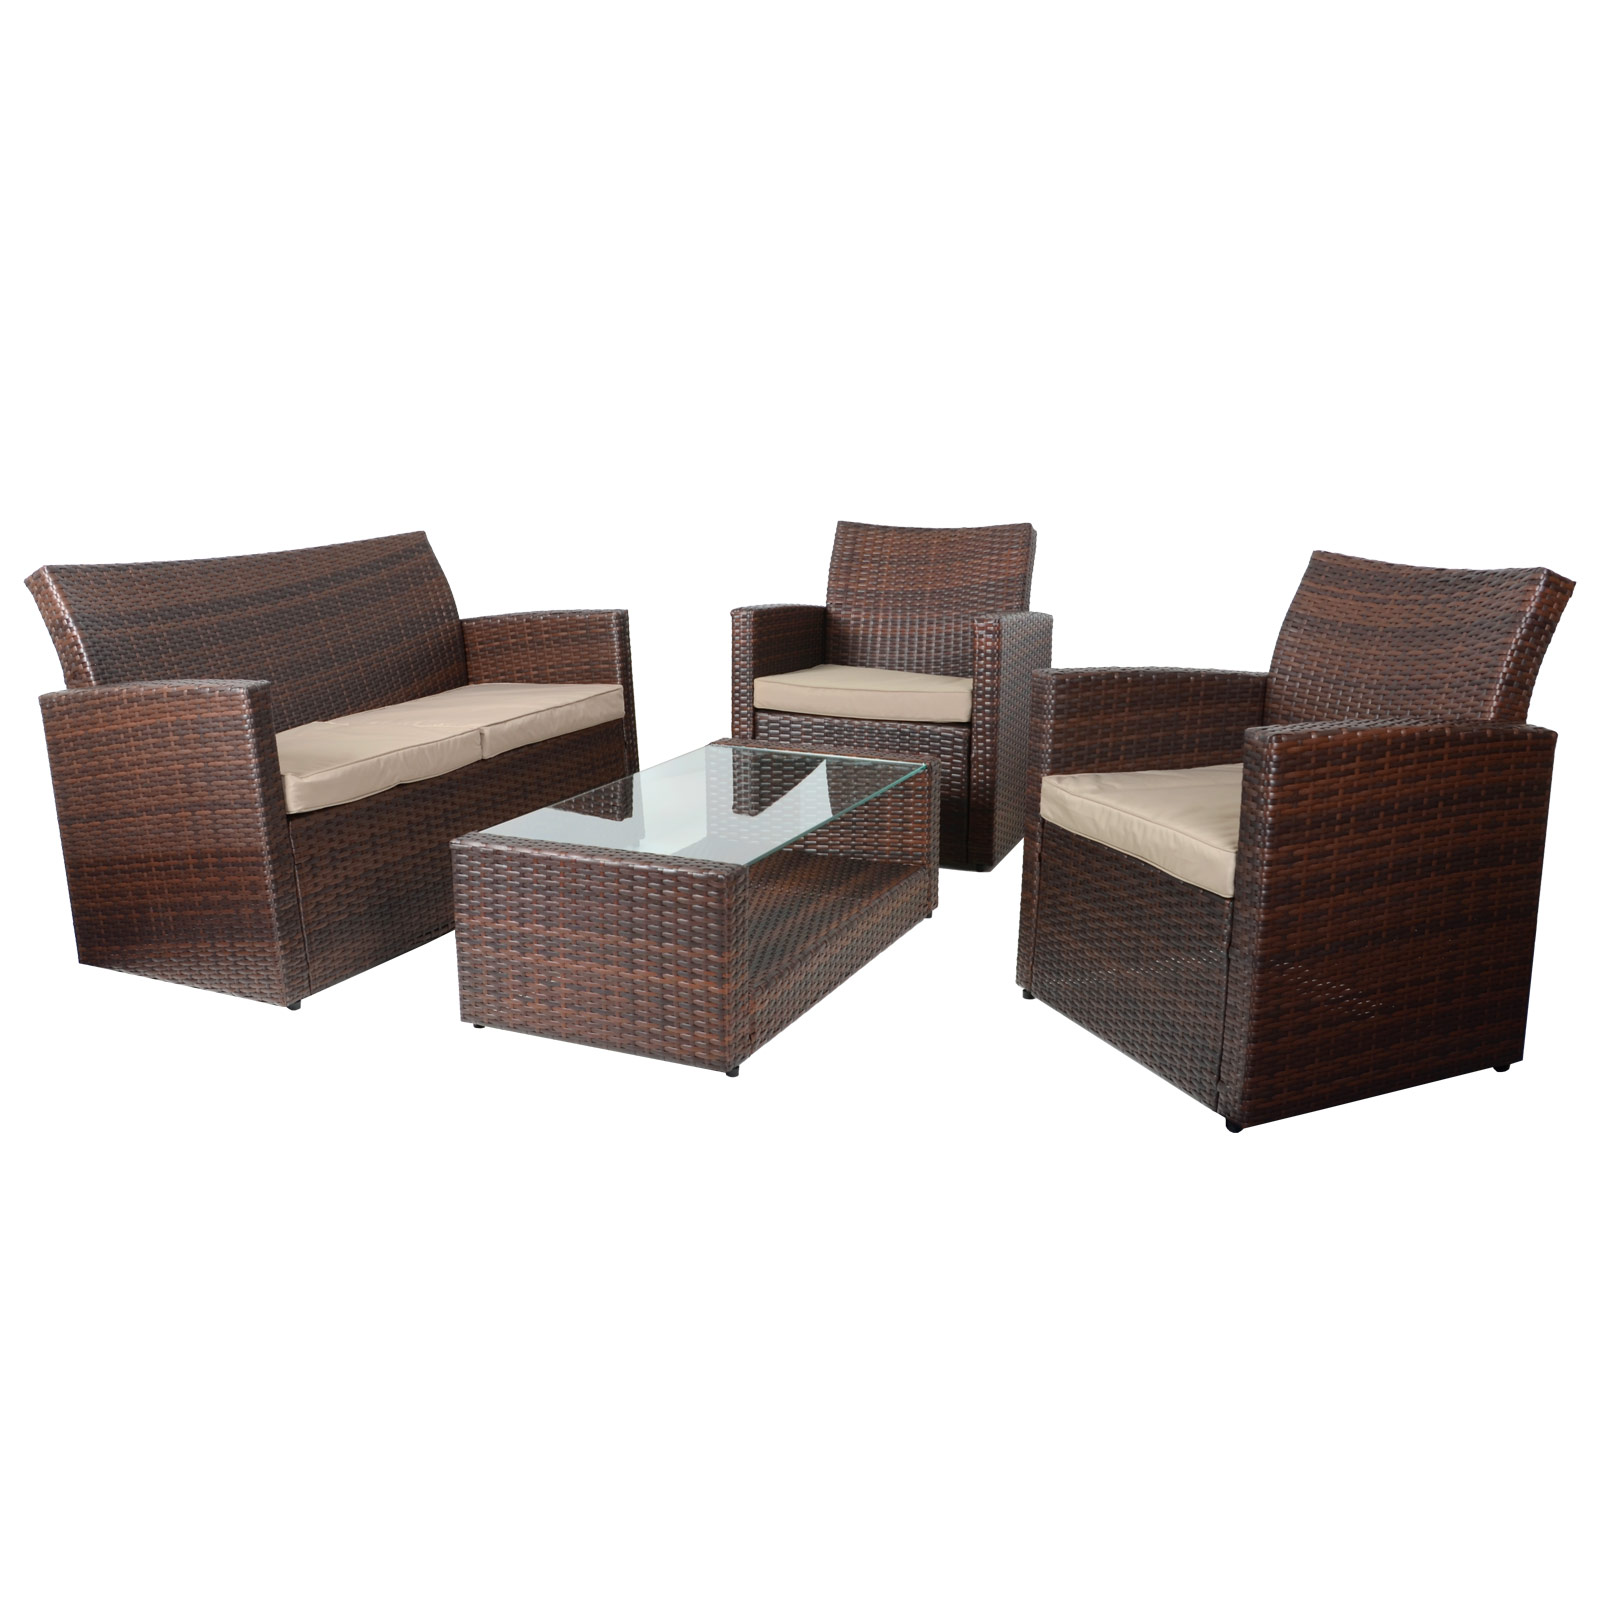 wicker sofa sets uk leather sofas ashley furniture 4pc tuscany rattan set garden conservatory